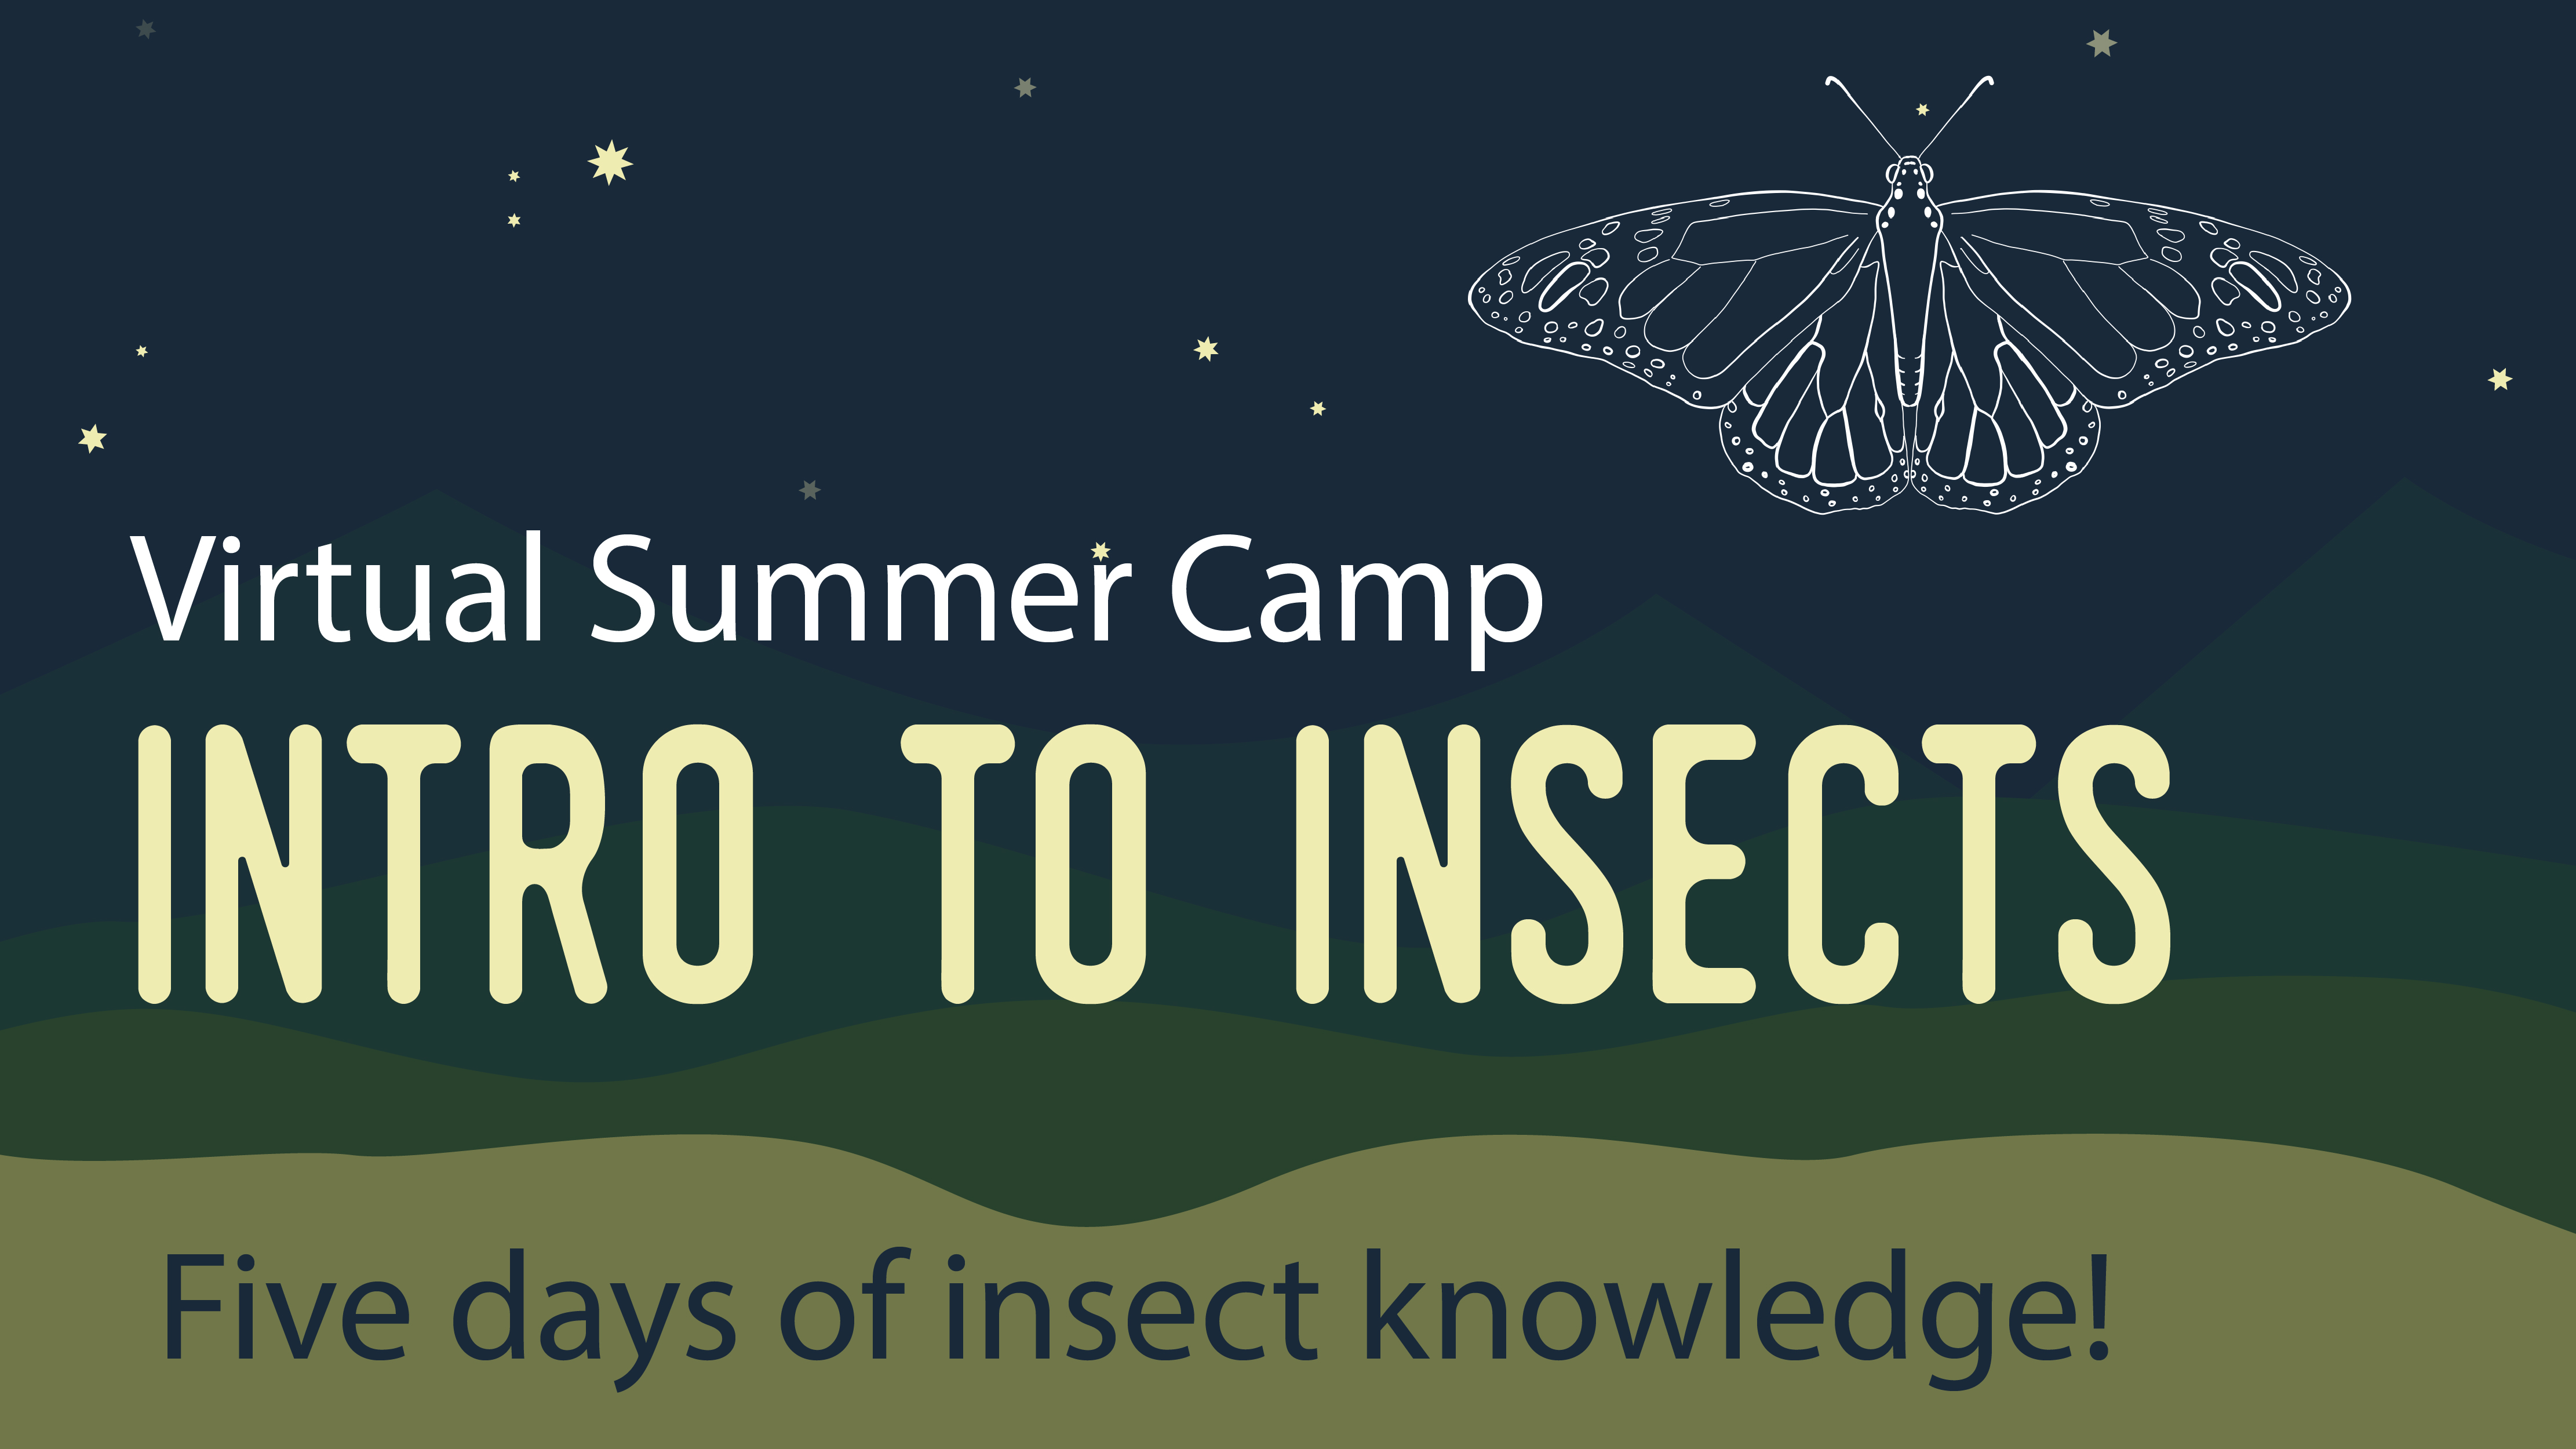 Mississippi Bug Blues Intro To insects virtual summer camp. Five days of insect knowledge. Learn the basic of insect anatomy, insect adaptations, insects and their environments, insects and humans, and much more! Even witness a centipede plotting its escape. Will it execute its escape plan? Will our zookeeper thwart the centipede's escape plan.